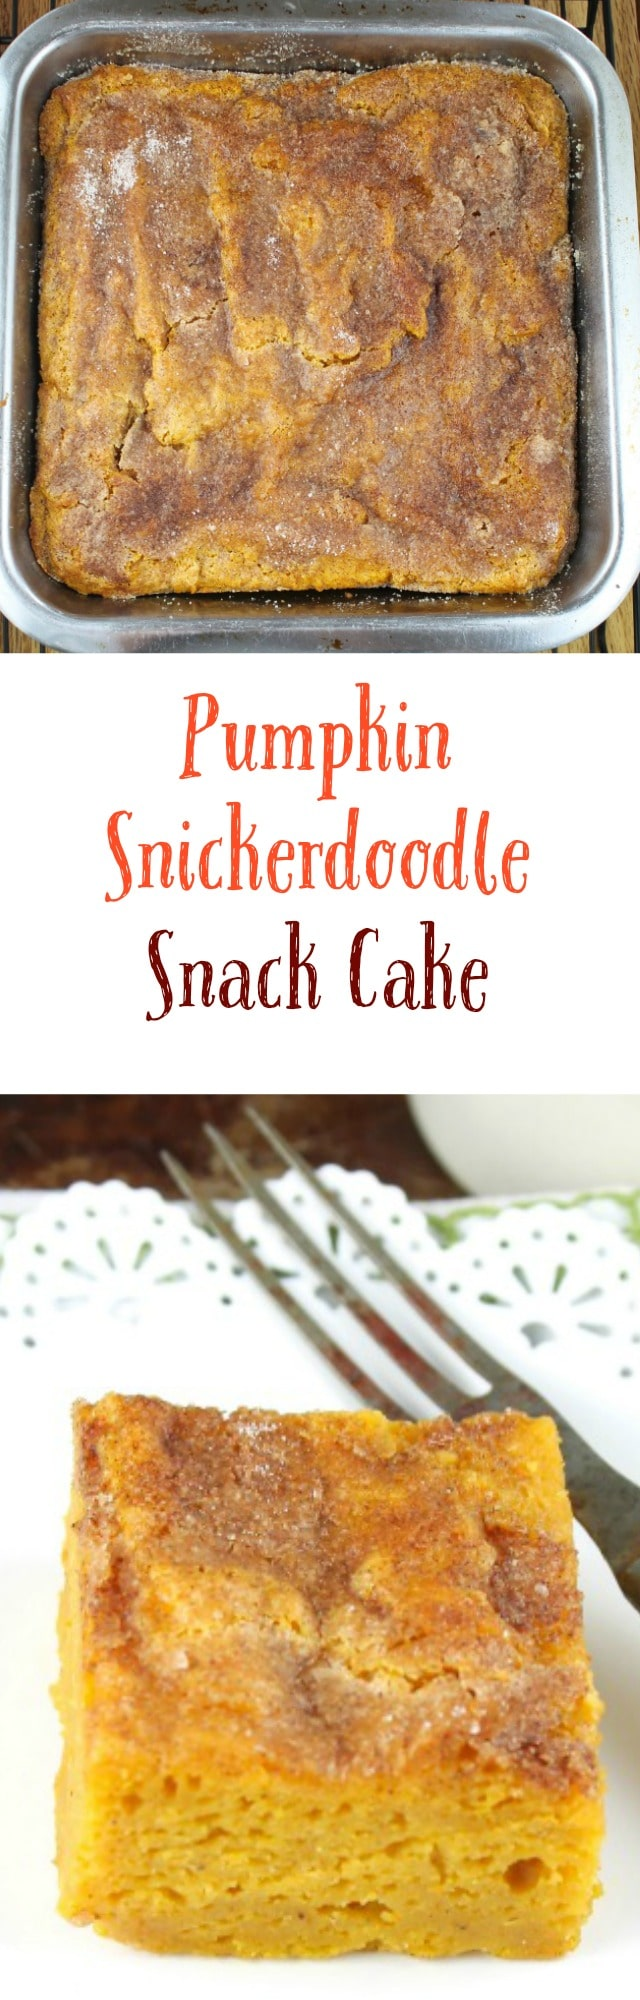 A super simple and delicious fall dessert! Pumpkin Snickerdoodle Snack Cake Recipe Found at Miss in the Kitchen